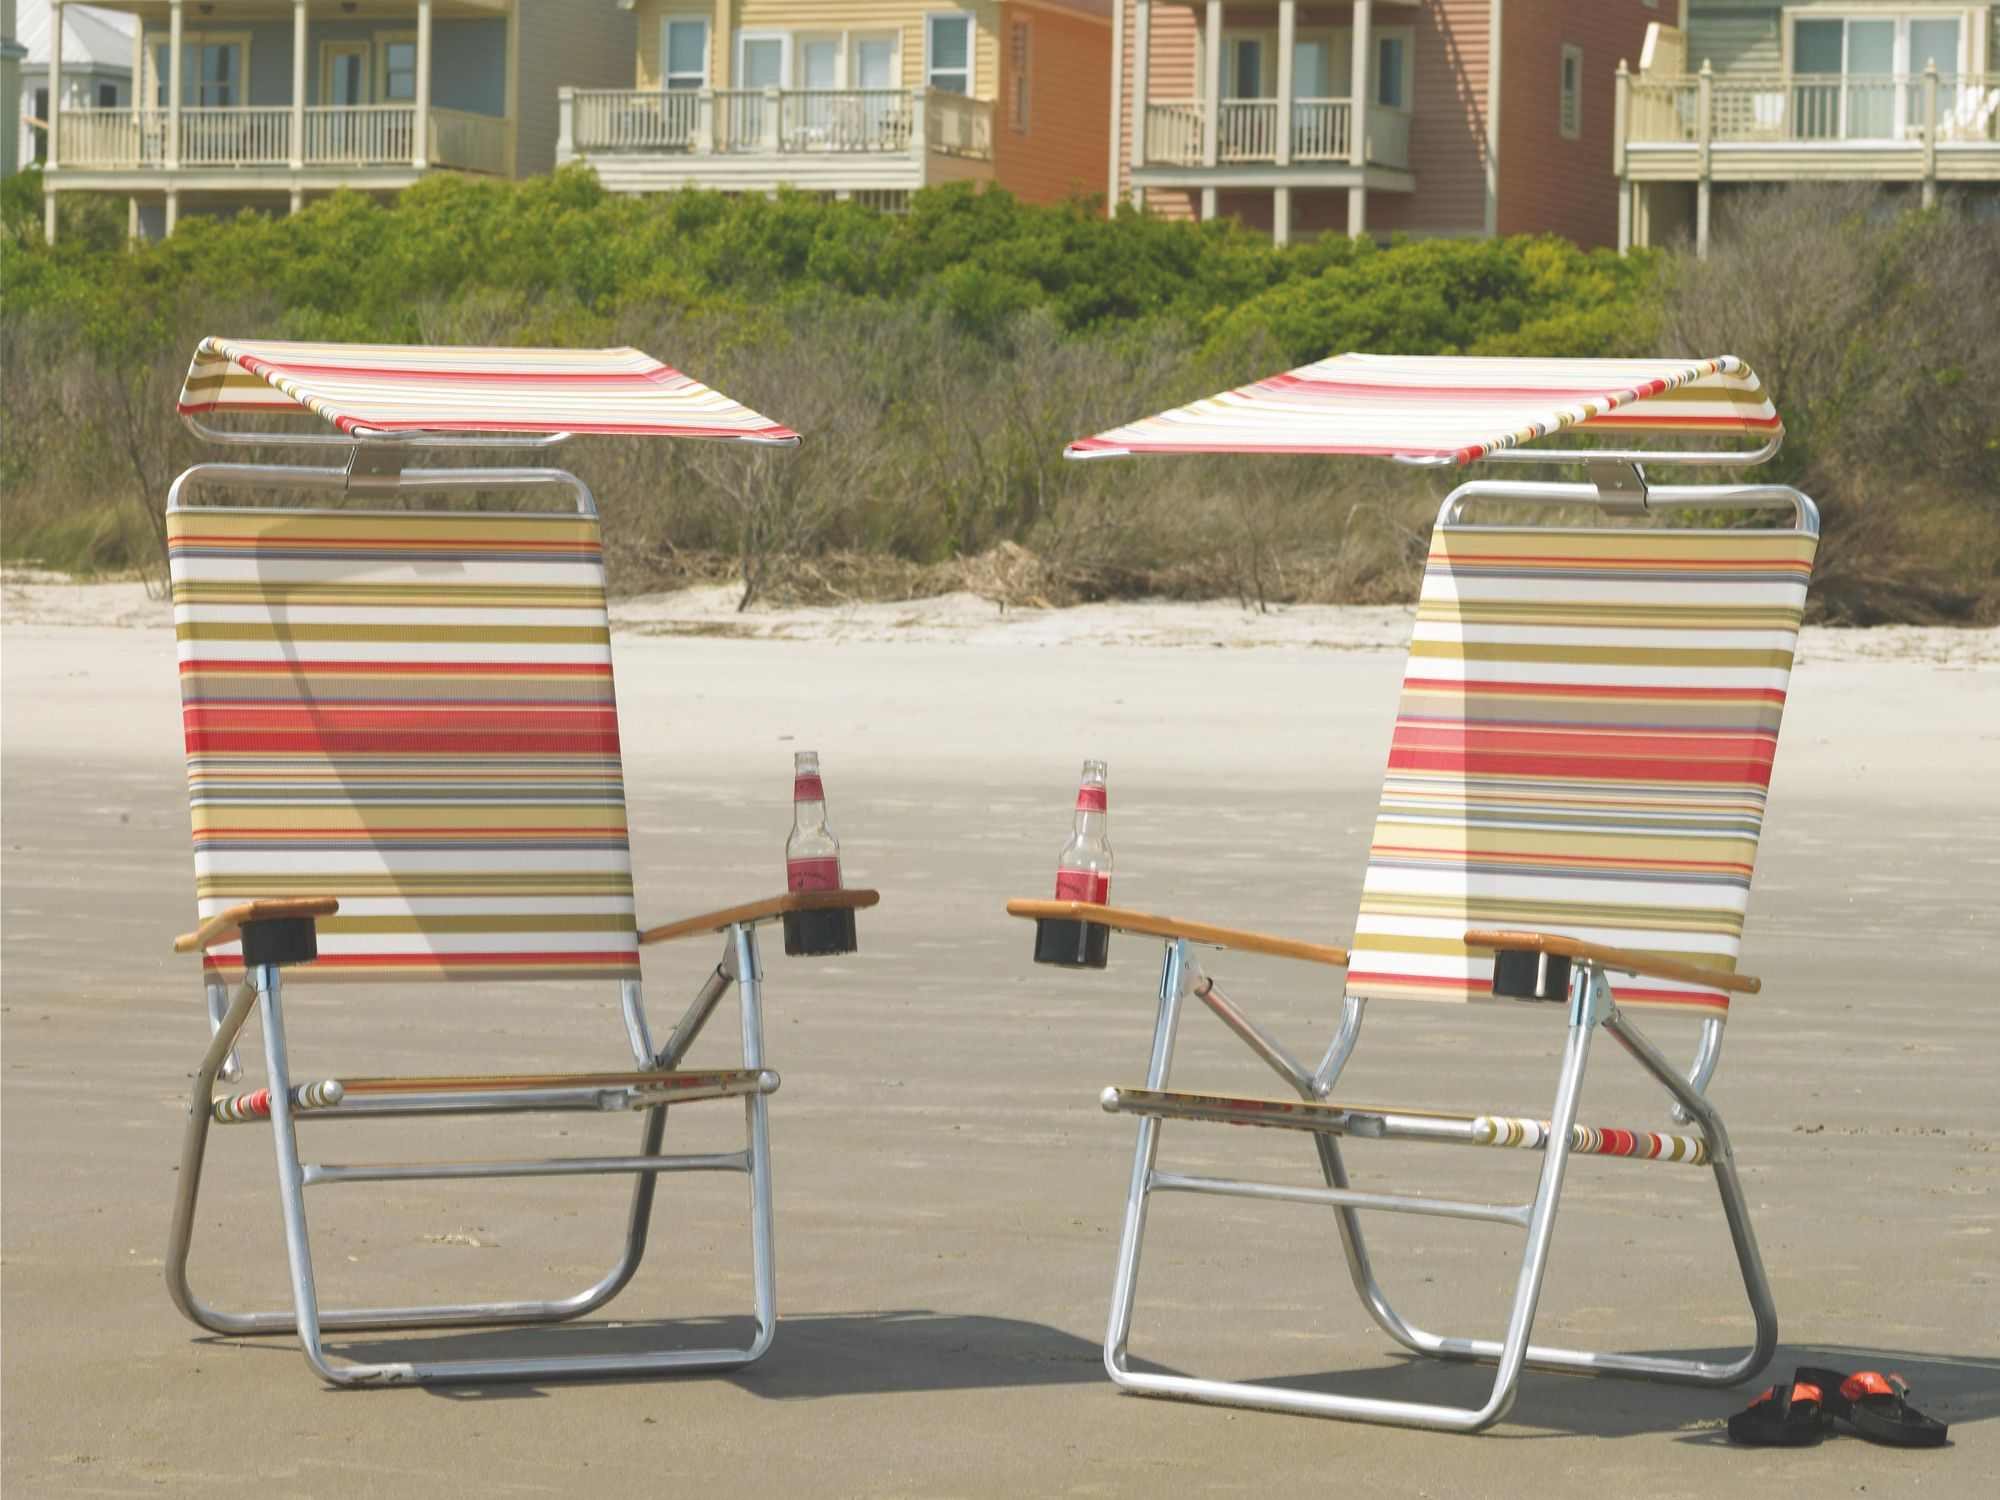 Telescope Casual Beach Chairs with Hood Sling Lounge Set | LNEBLS & Telescope Casual Beach Chairs with Hood Sling Lounge Set | LNEBLS ...